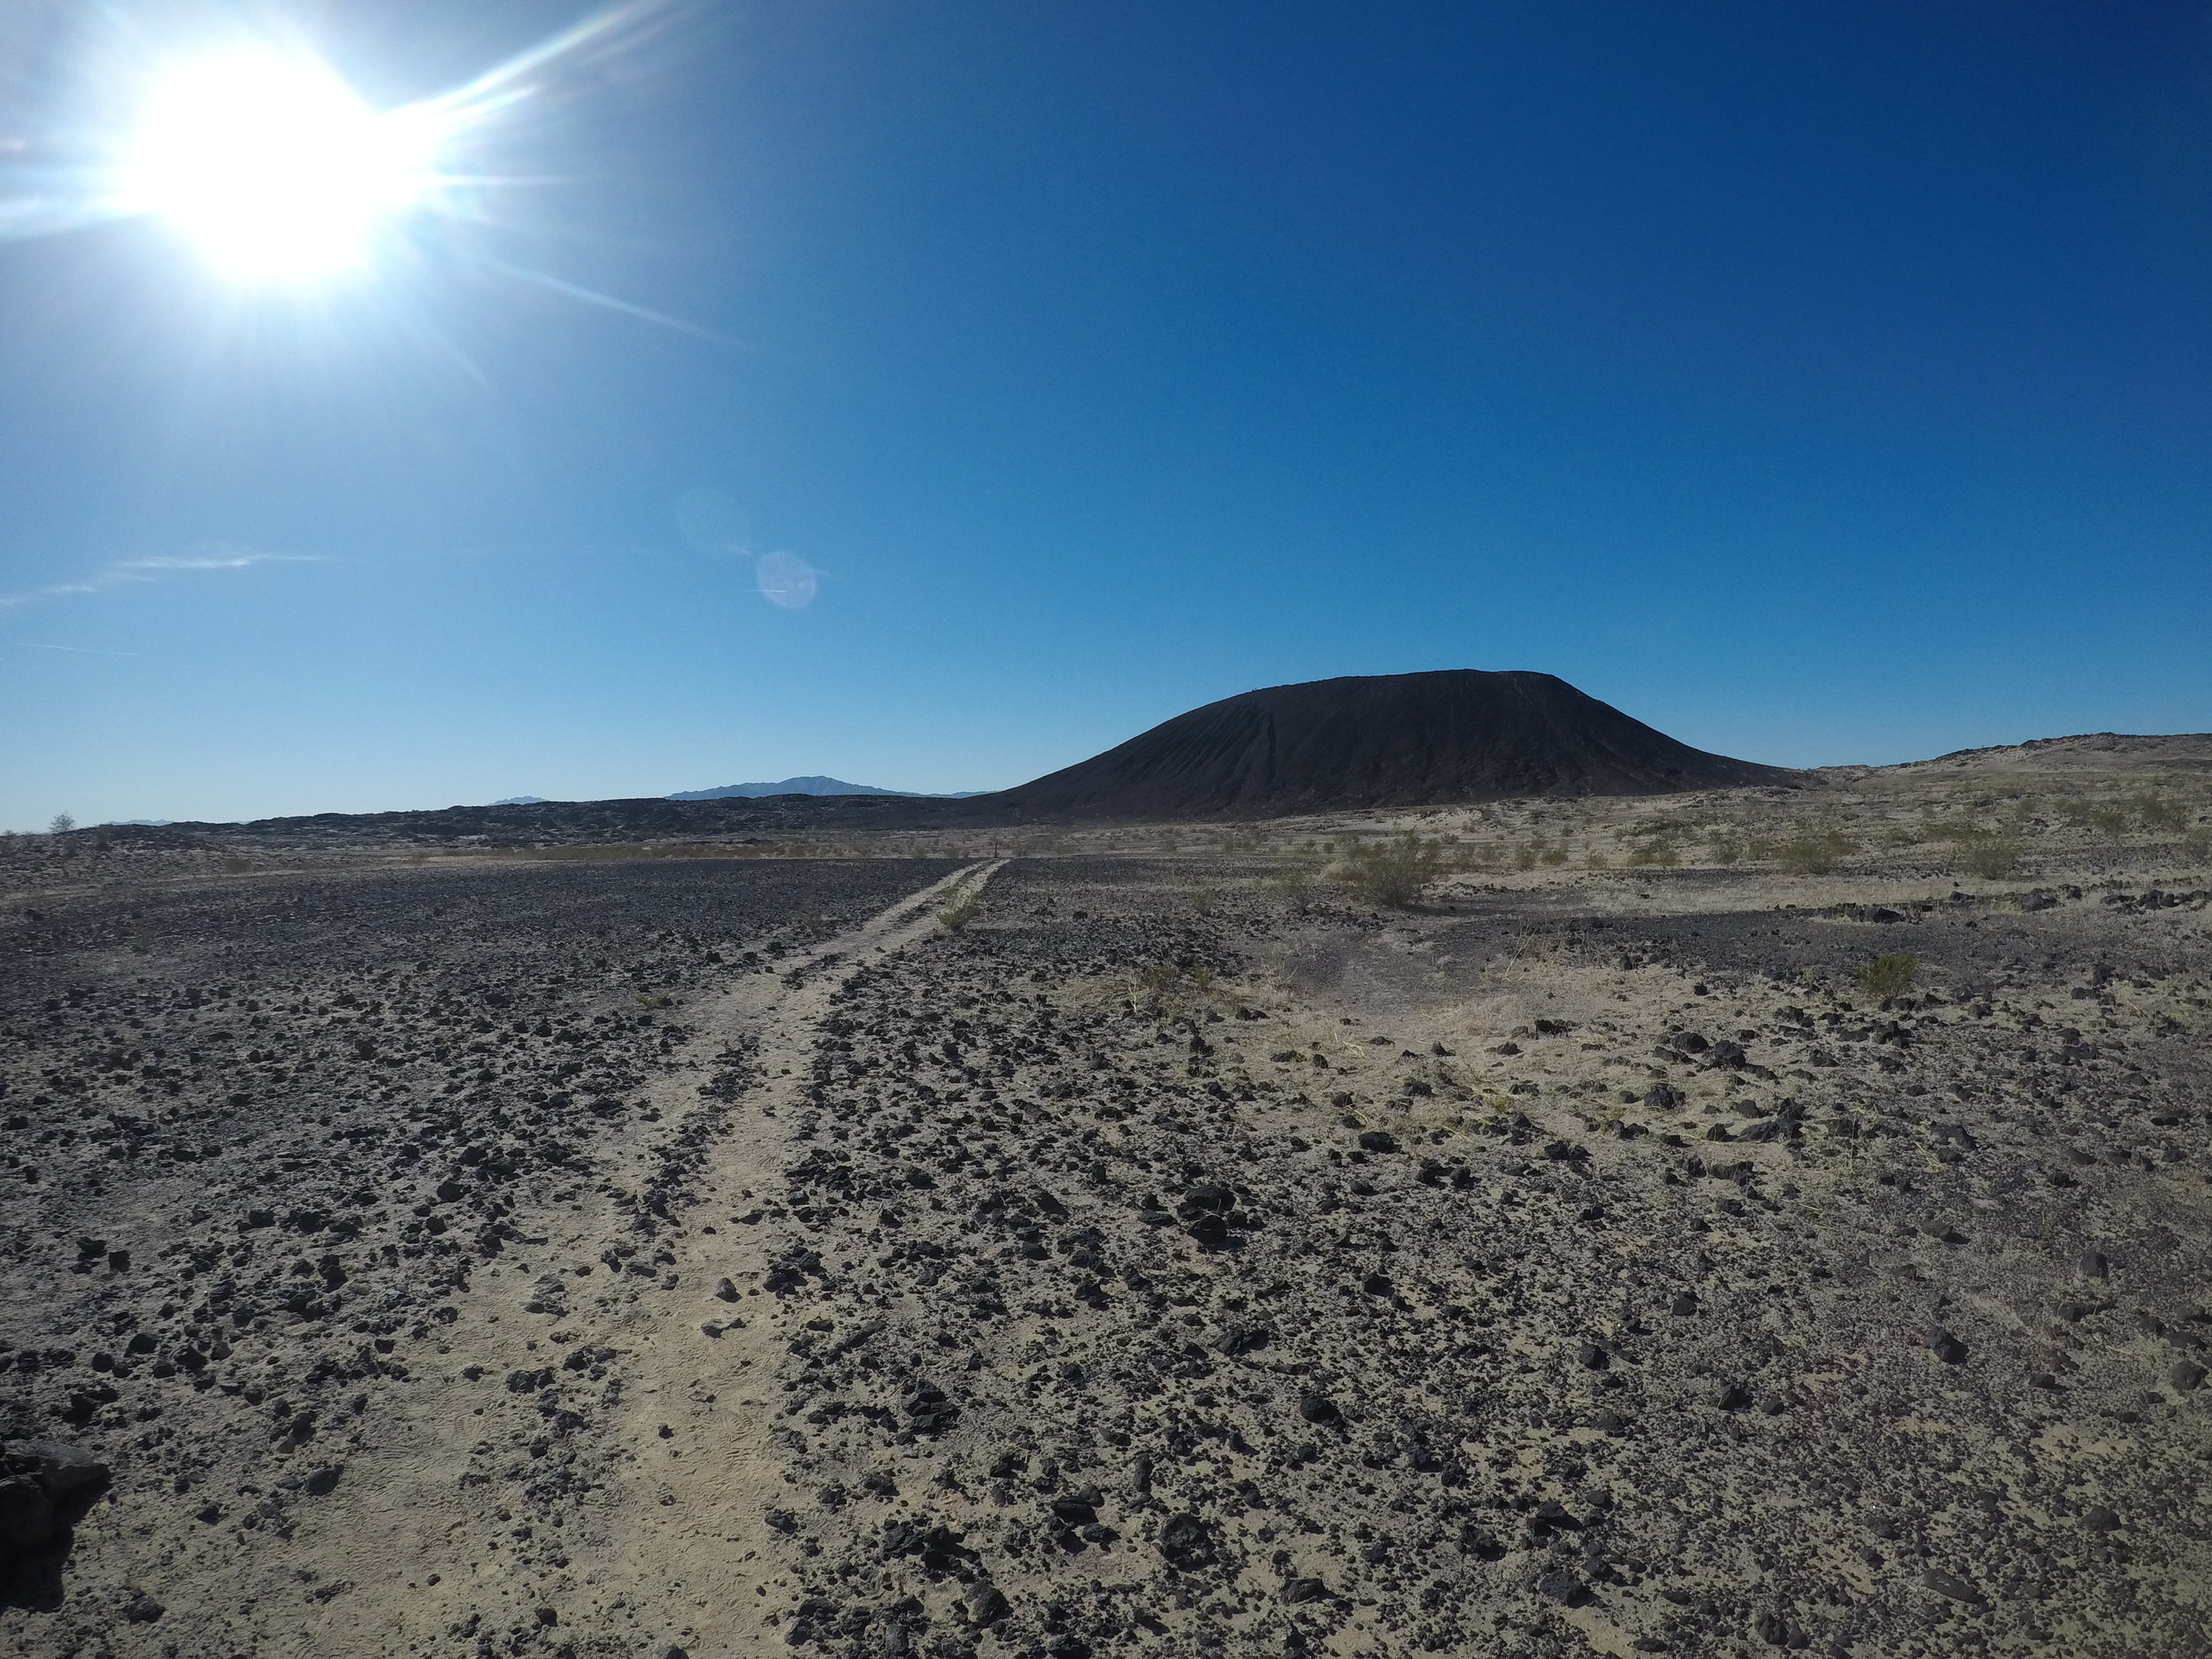 The Amboy Crater is actually a cinder cone volcano in the middle of the Mojave Desert.